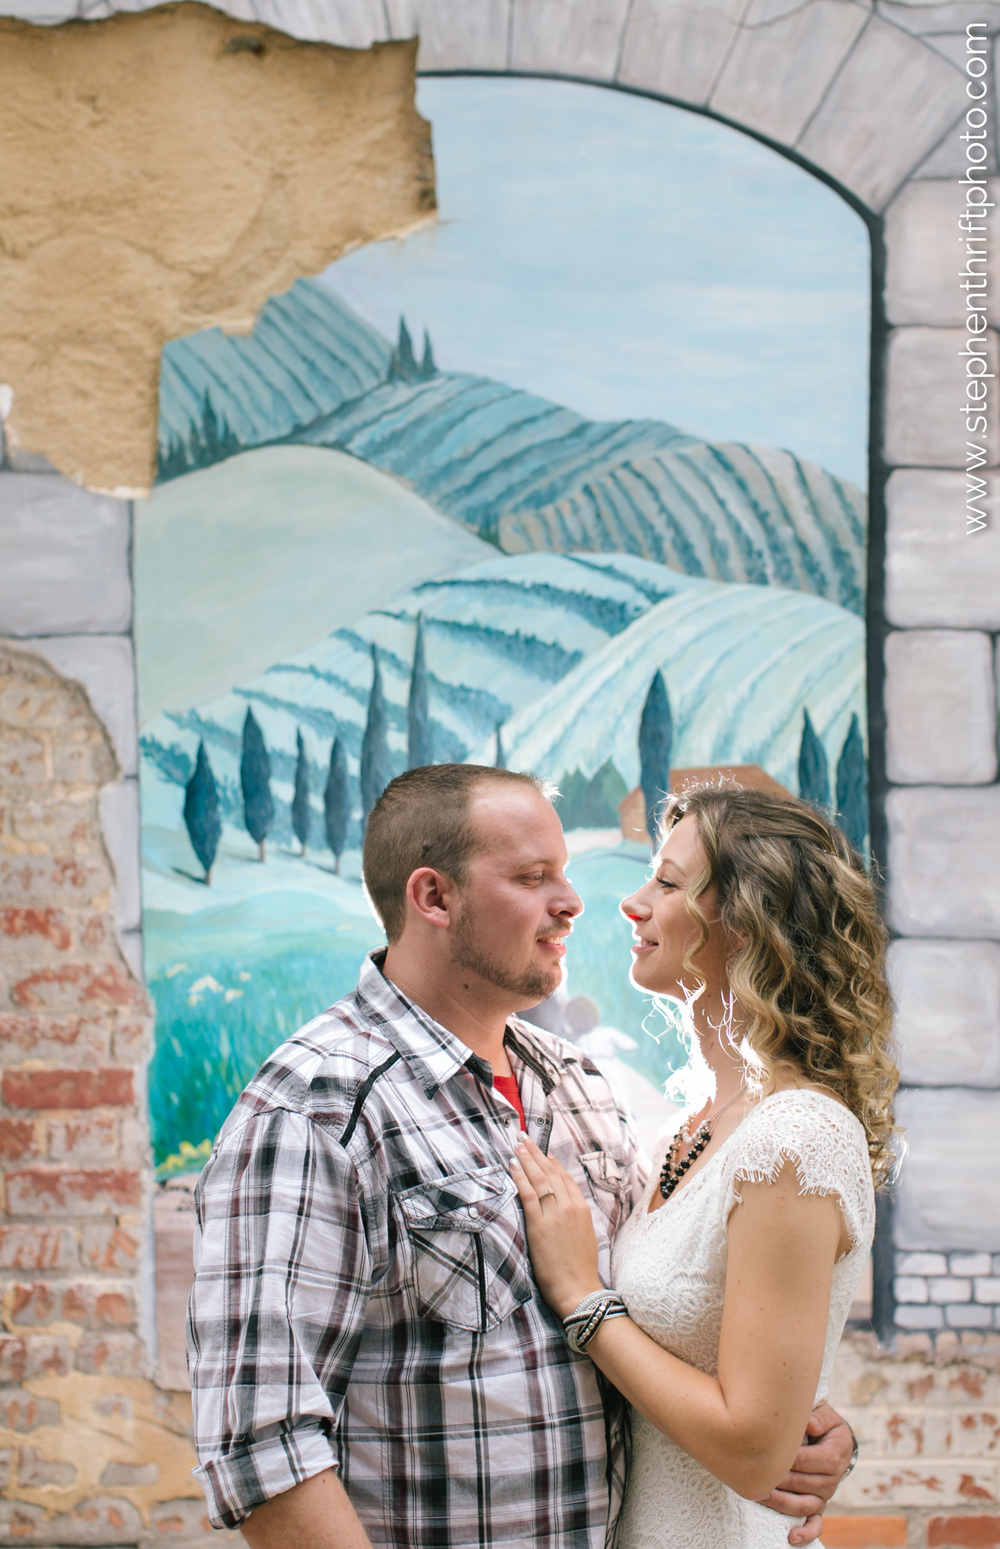 Wedding photographer, Stephen Thrift captures Whiney and Jason in Greensboro, North Carolina.